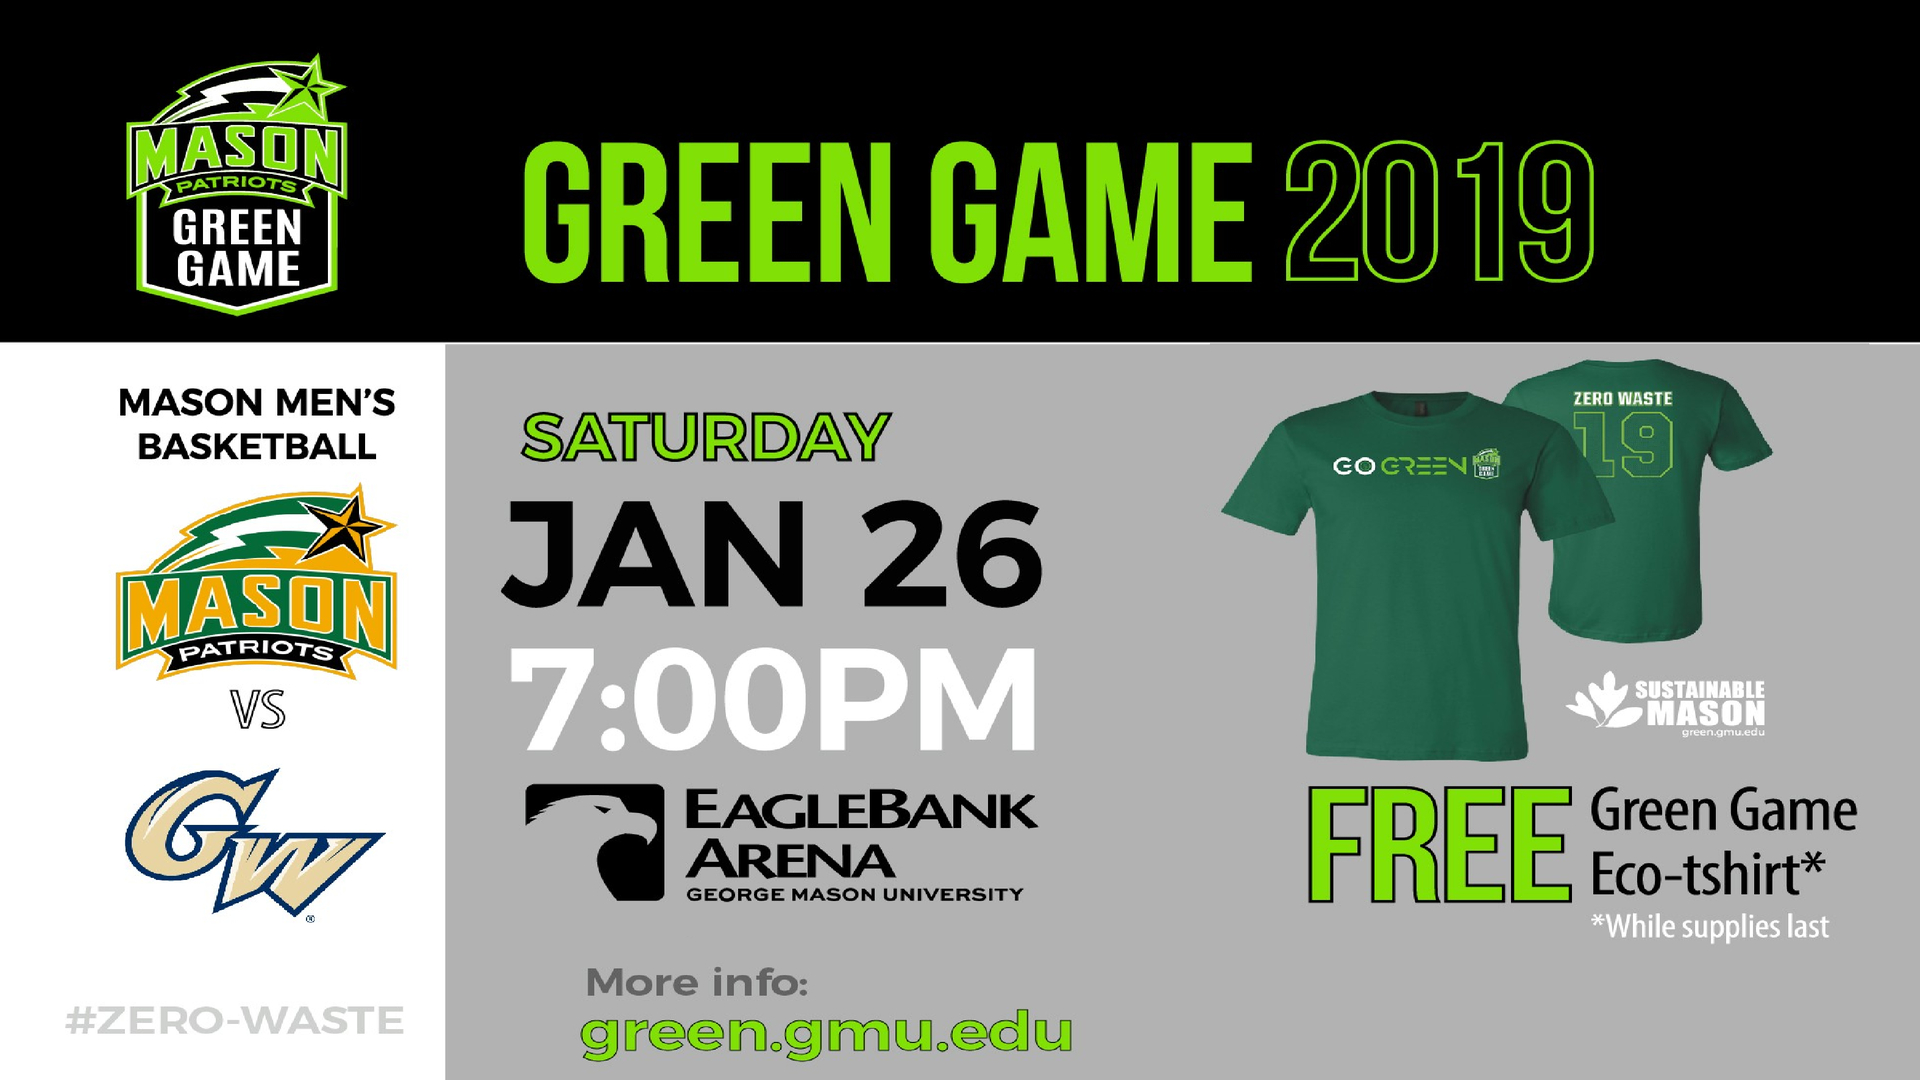 Information regarding Green Game 2019 is as follows Create Your Own Tags: is #SustainableMason #ZEROWASTE and Start date (when you would like your content to be posted) is January 19 2019 and End Date  (when you would like your content to be removed from the screens) is January 26 2019 and Name is Amber Saxton and Email is asaxton2@gmu.edu and File is Browse and Name of Ad/Event is Green Game 2019 and File Name is Green-Game-2019-orca-tv-ad_comp.jpg and Panel for your ad to be displayed is Main and Affiliation is Mason Department and Group Name is Sustainable Mason and